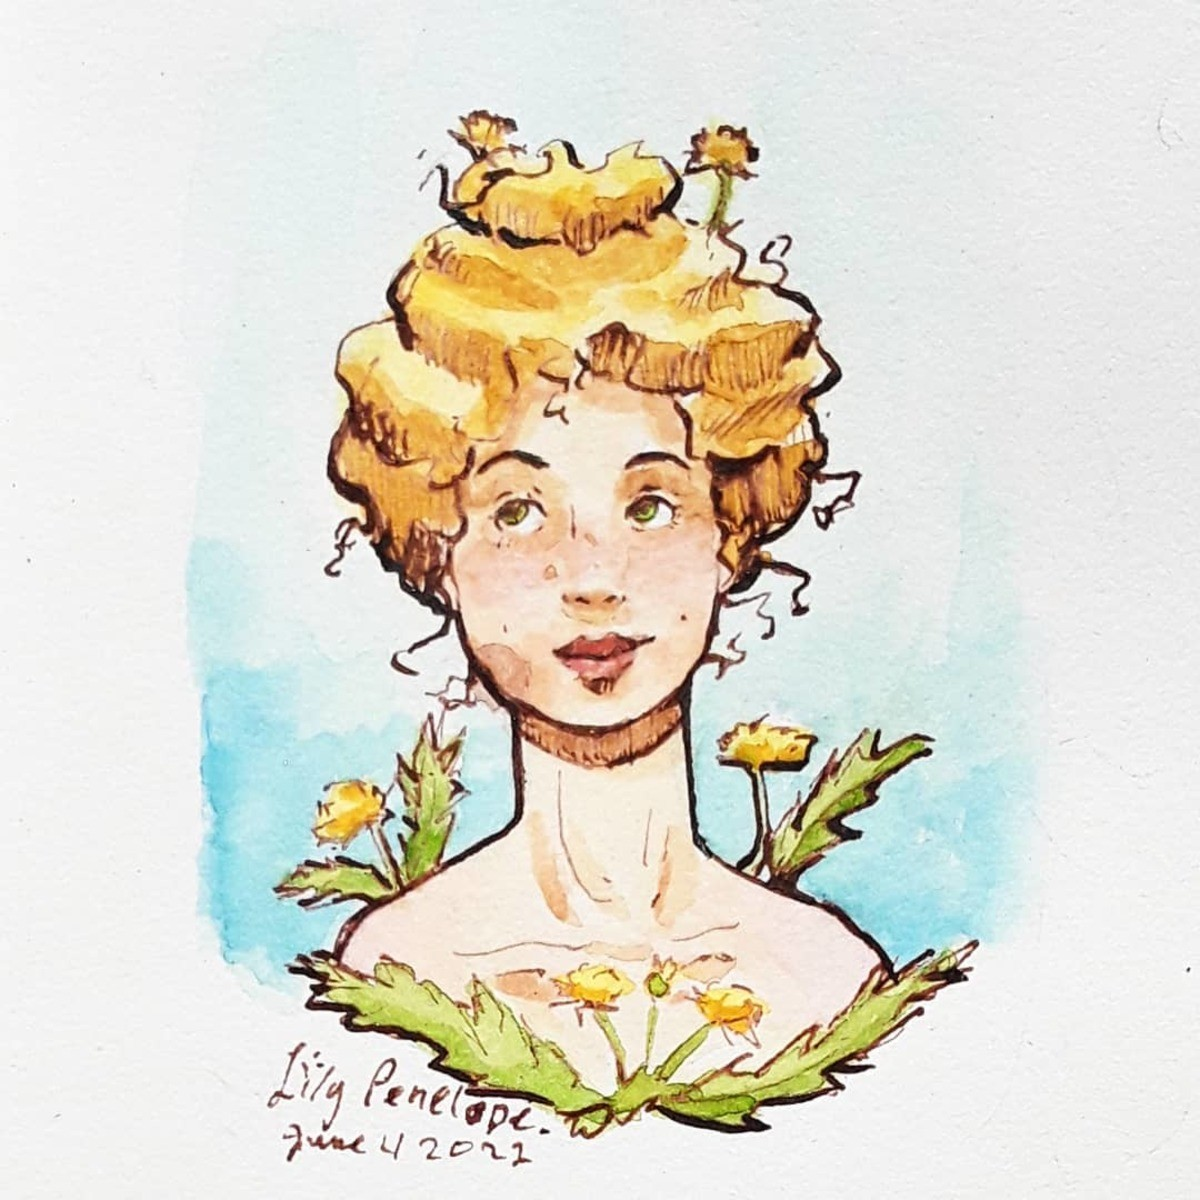 Flower Girls: Dandelion. I used colored ink, dip pens, and water color. join list: WatercolorAndOrInk (43 subs)Mention History I'm going to be posting a new wor